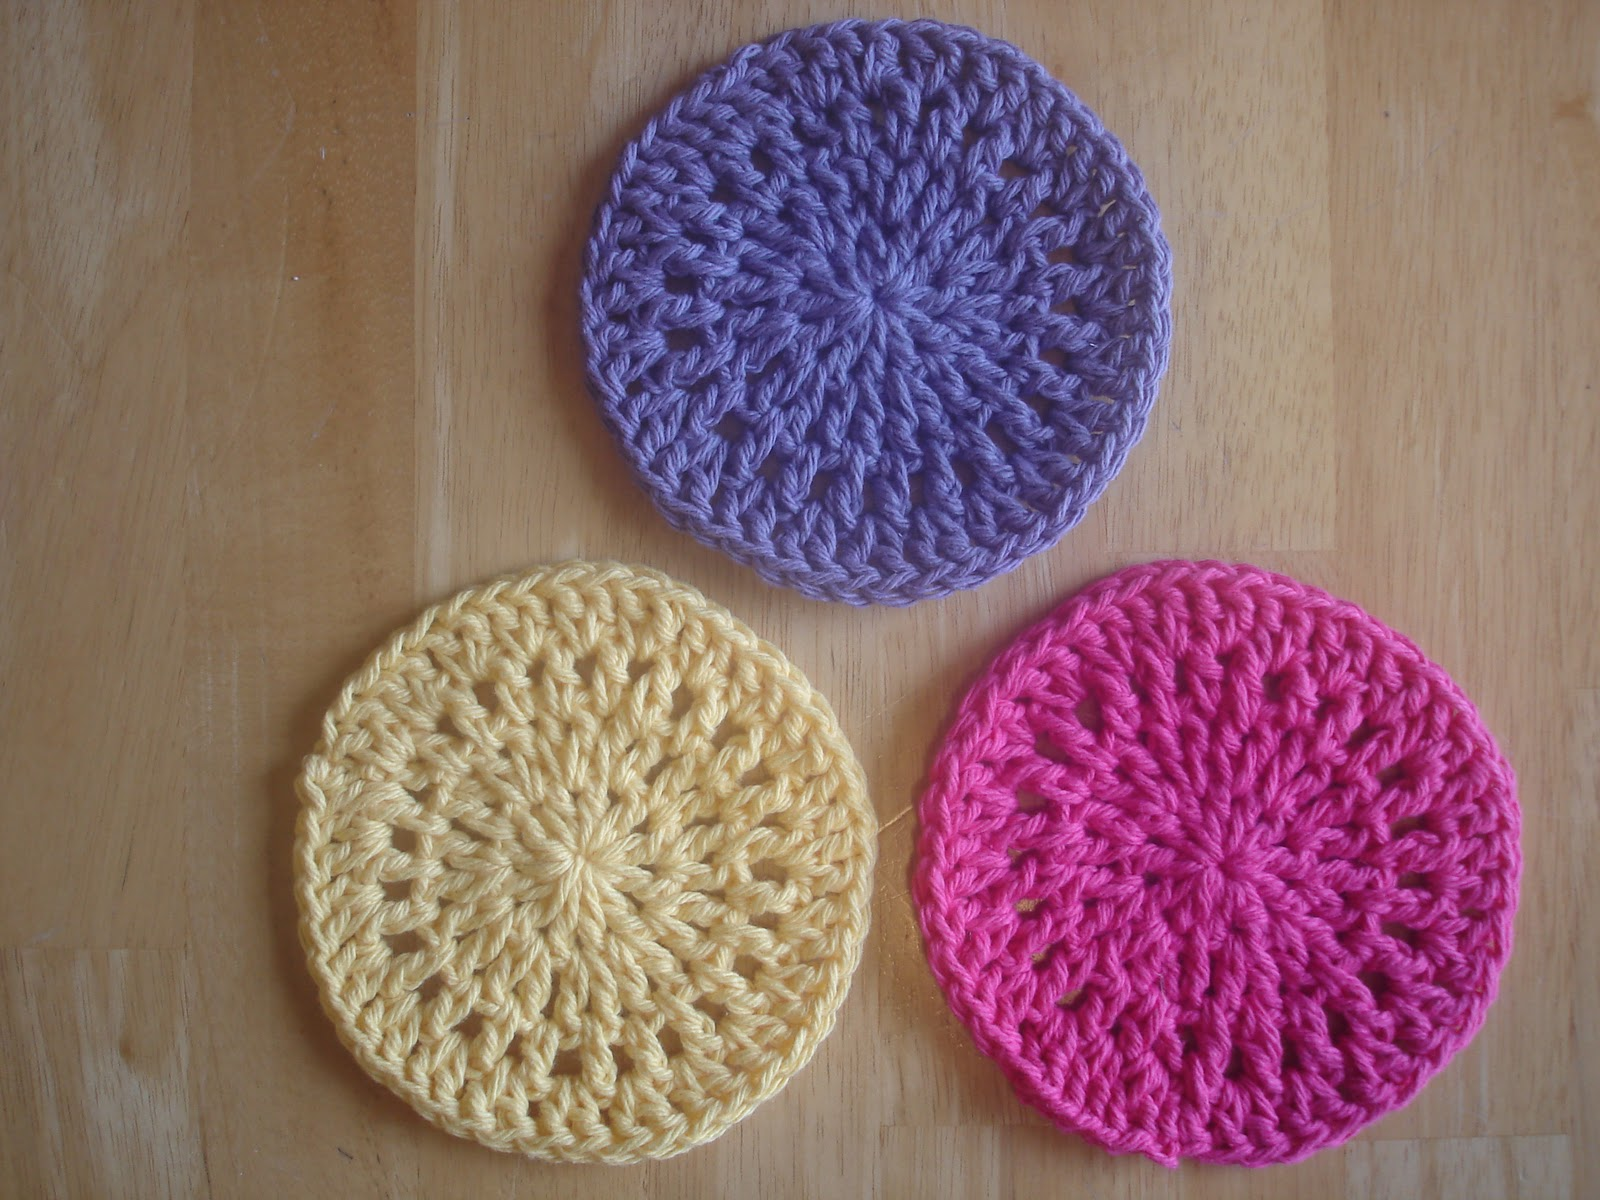 FREE CROCHET TABLE TOPPER PATTERNS - Crochet and Knitting ...